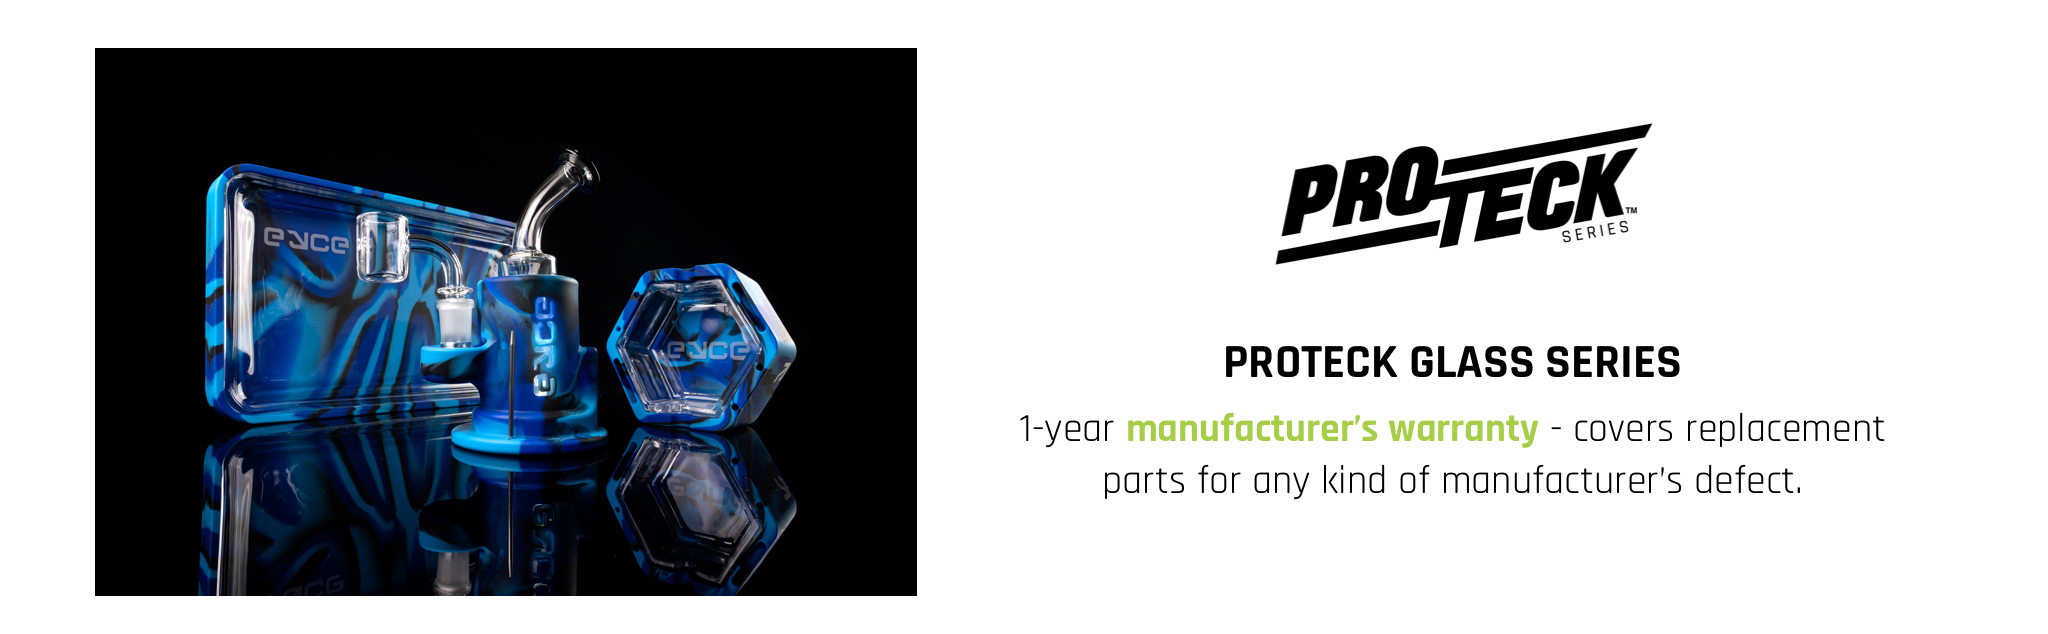 Proteck glass series warranty covers any kind of manufacturer's defect within 1 year of purchase. All smoking products and smoking accessories are backed by the 1 year manufacturer's warranty.